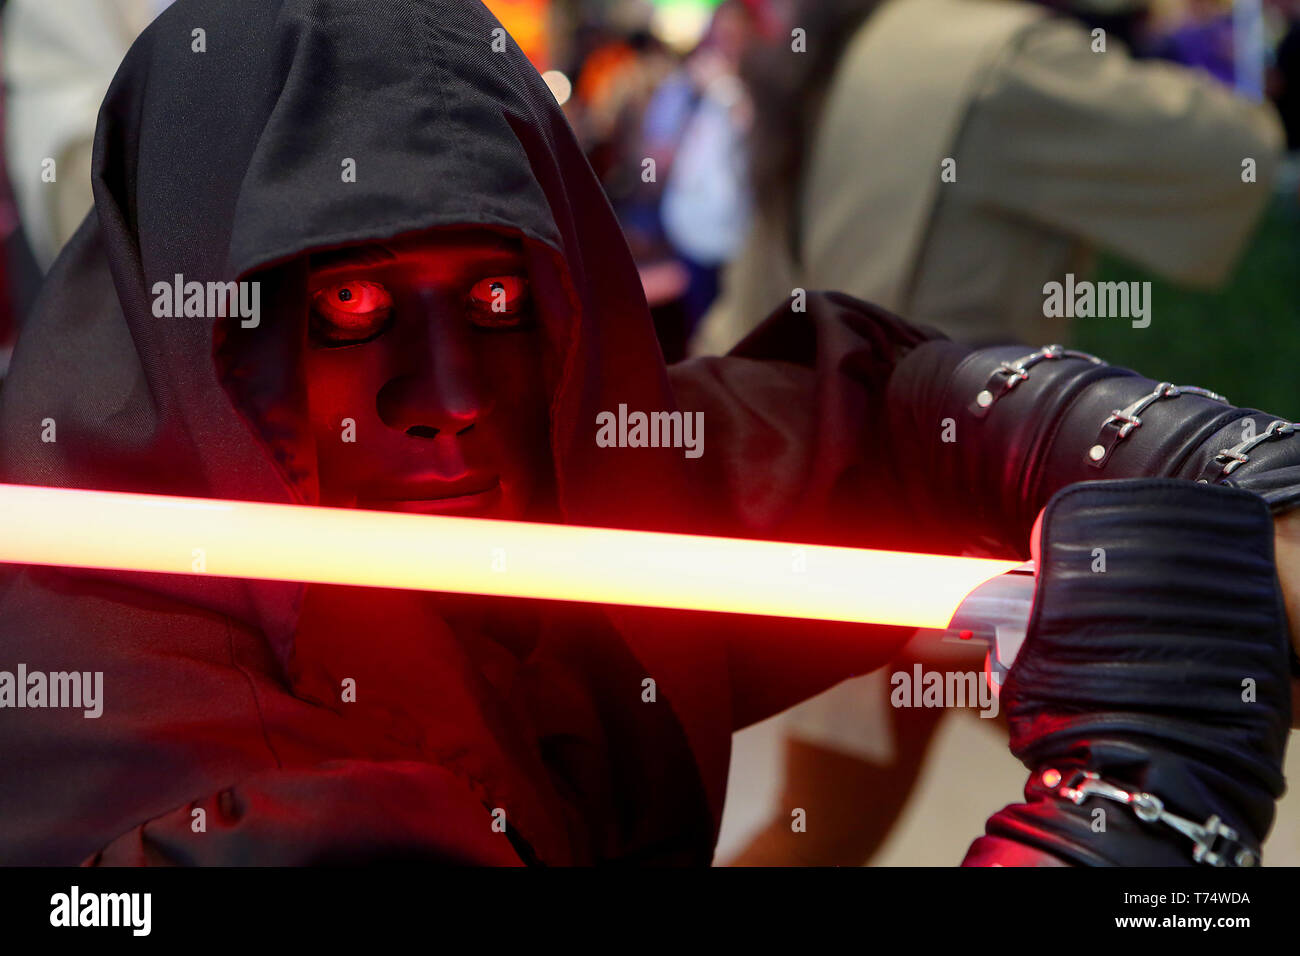 Taguig City, Philippines. 4th May, 2019. A fan dressed as a Star Wars character participates in the Star Wars Day in a mall in Taguig, the Philippines, May 4, 2019. The Star Wars Day is celebrated on May 4 every year by the fans of the sci-fi movie series in different parts of the world. Credit: ROUELLE UMALI/Xinhua/Alamy Live News - Stock Image